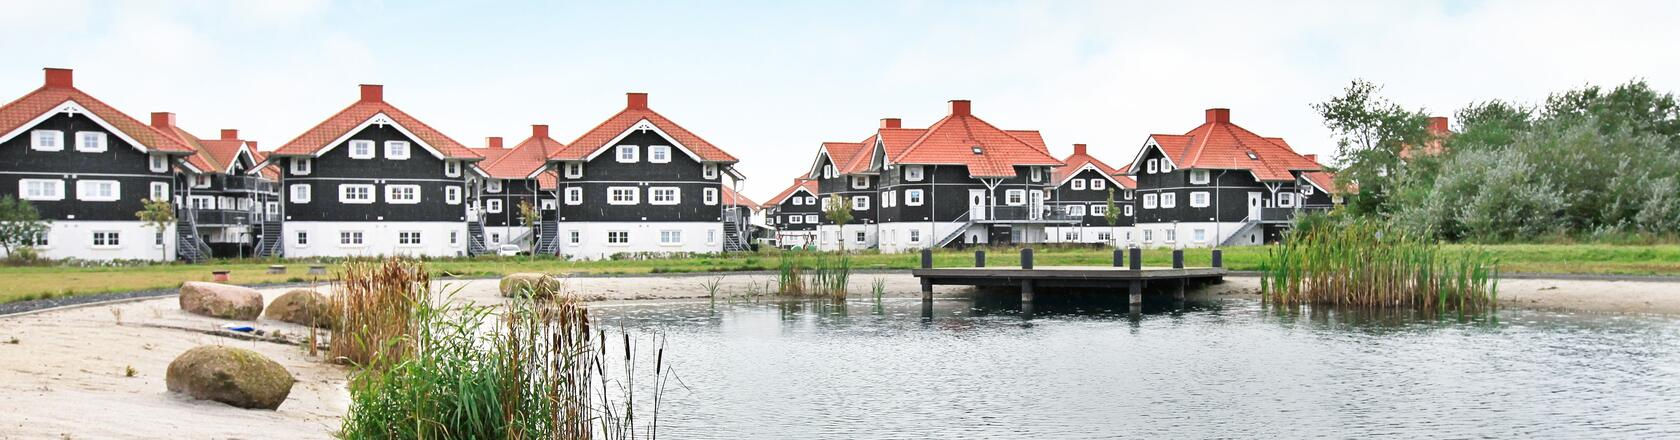 Hasmark in Denmark - Rent a holiday home  with DanCenter